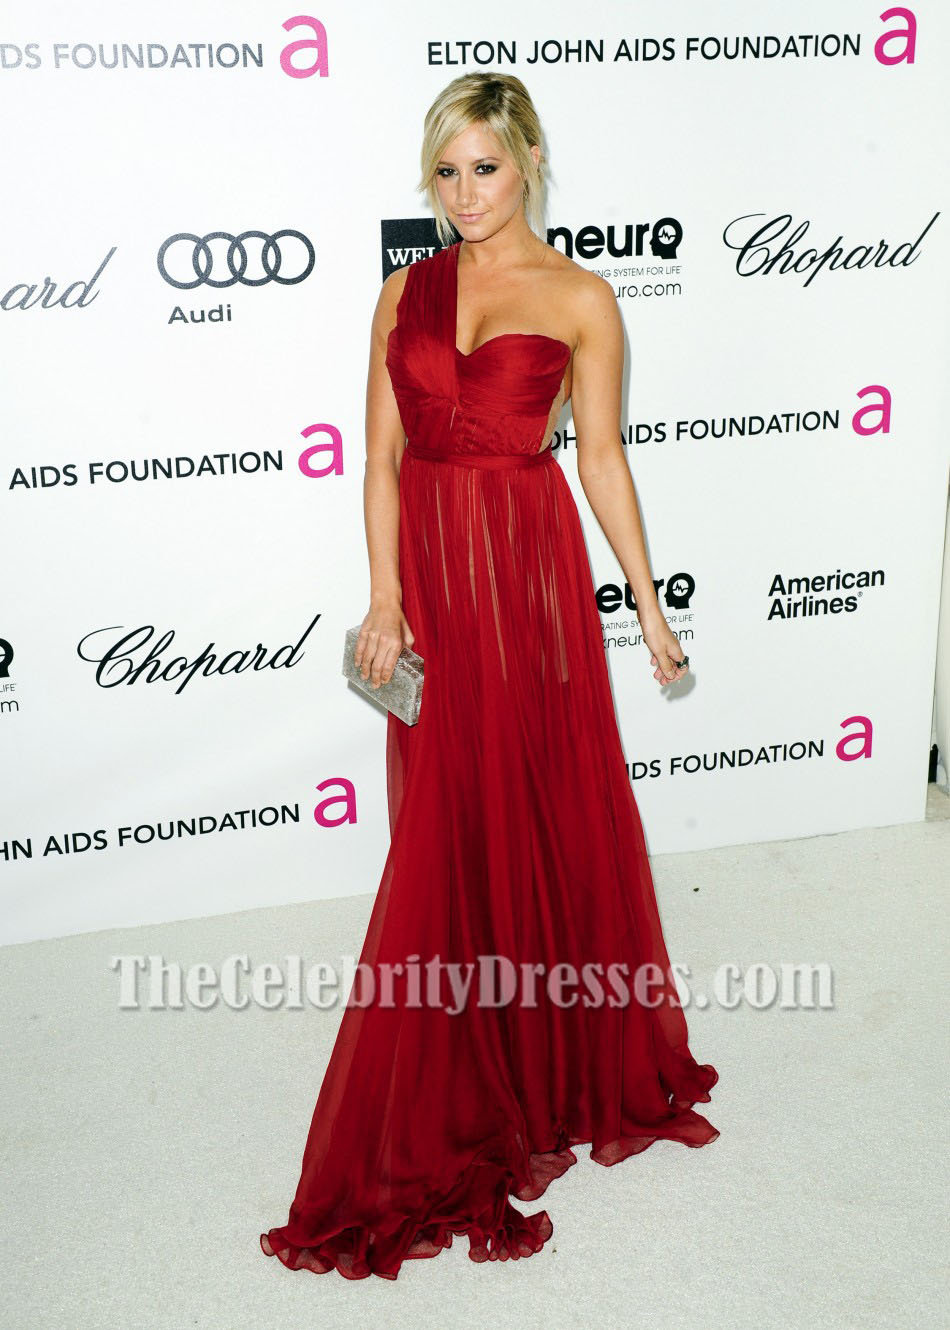 Ashley tisdale one shoulder evening dress oscar awards 2012 party ashley tisdale one shoulder evening dress oscar awards 2012 party thecelebritydresses ombrellifo Choice Image